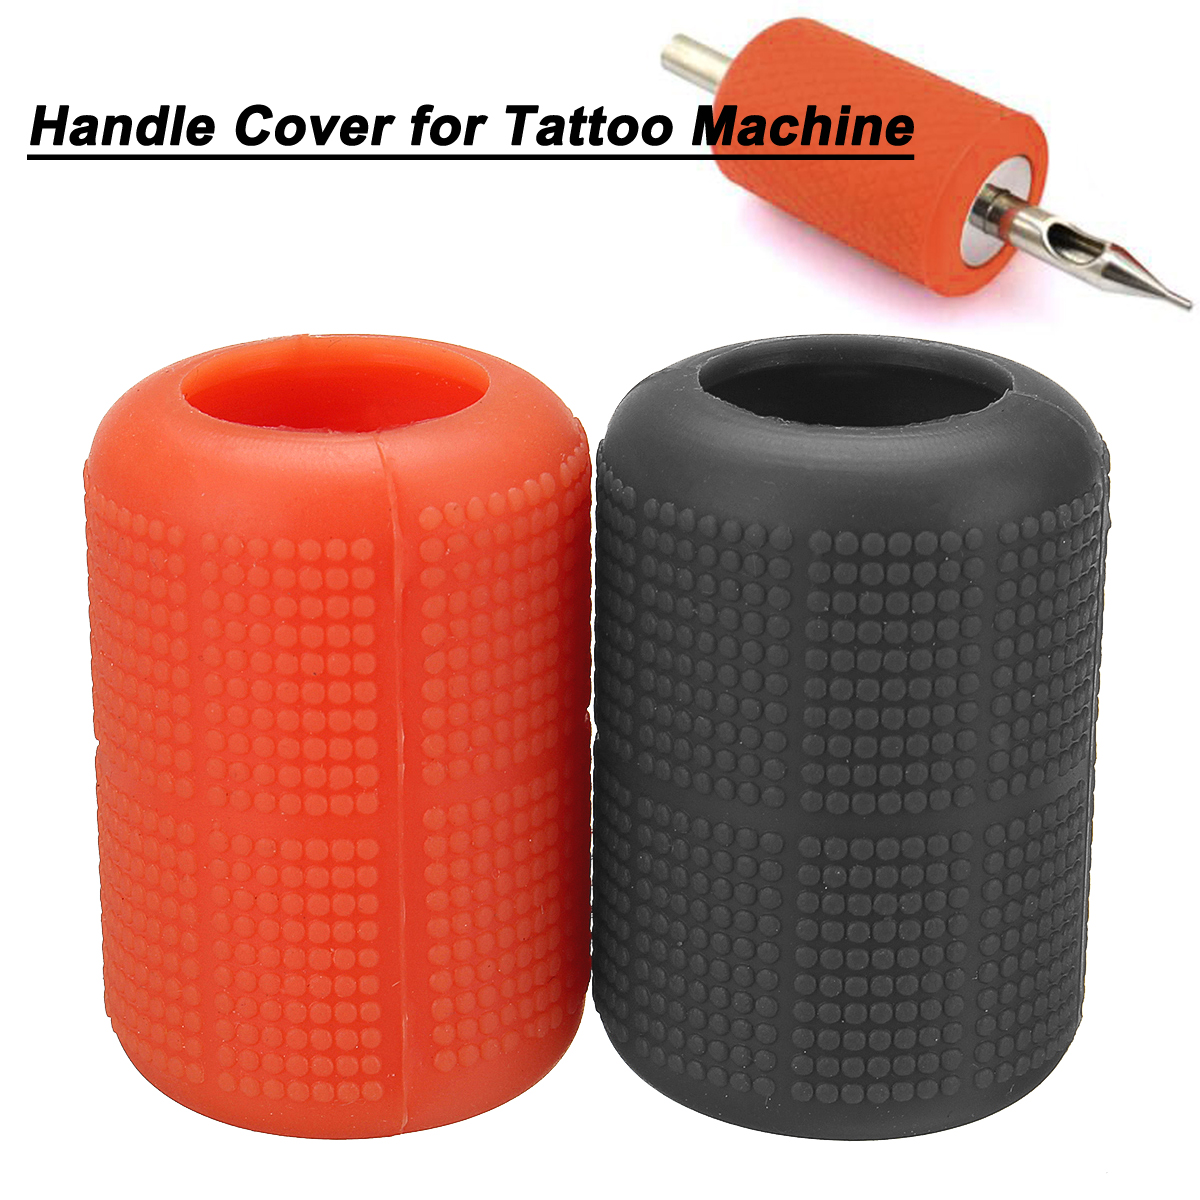 Confortable Tattoo Grip Cover Soft Silicone 22-25mm Washable Handle Cover for Tattoo Machine Two Colors Available Grey OrangeConfortable Tattoo Grip Cover Soft Silicone 22-25mm Washable Handle Cover for Tattoo Machine Two Colors Available Grey Orange